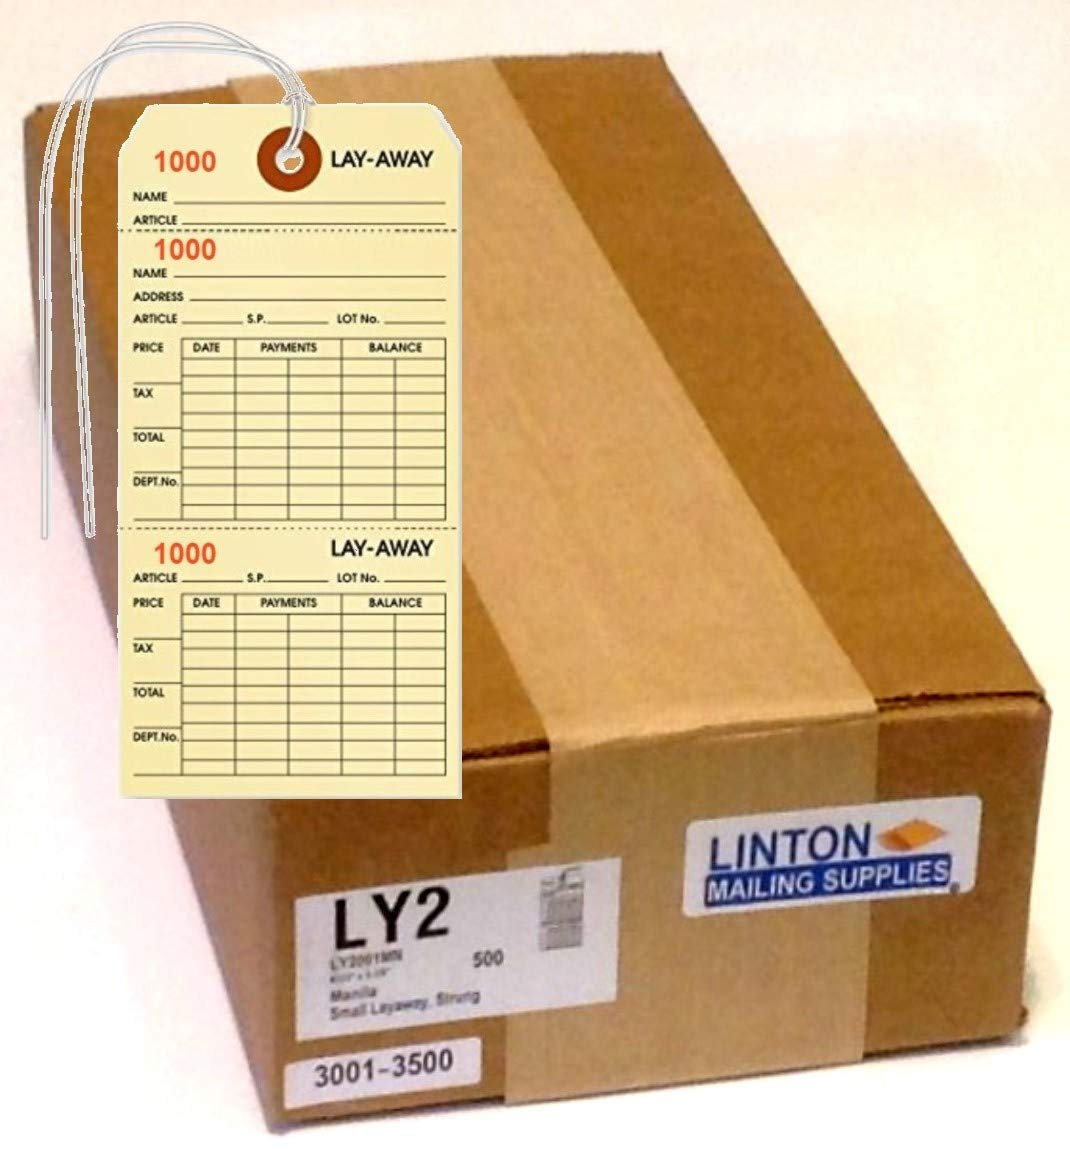 Layaway Tag, Manila Cardstock (3.125'' x 6.25'') w Two Tear-Off Sections, Black Ink w Sequential Red Numbers, Reinforced Hole w String Attached - Box of 500 Tags by LINTON MAILING SUPPLIES